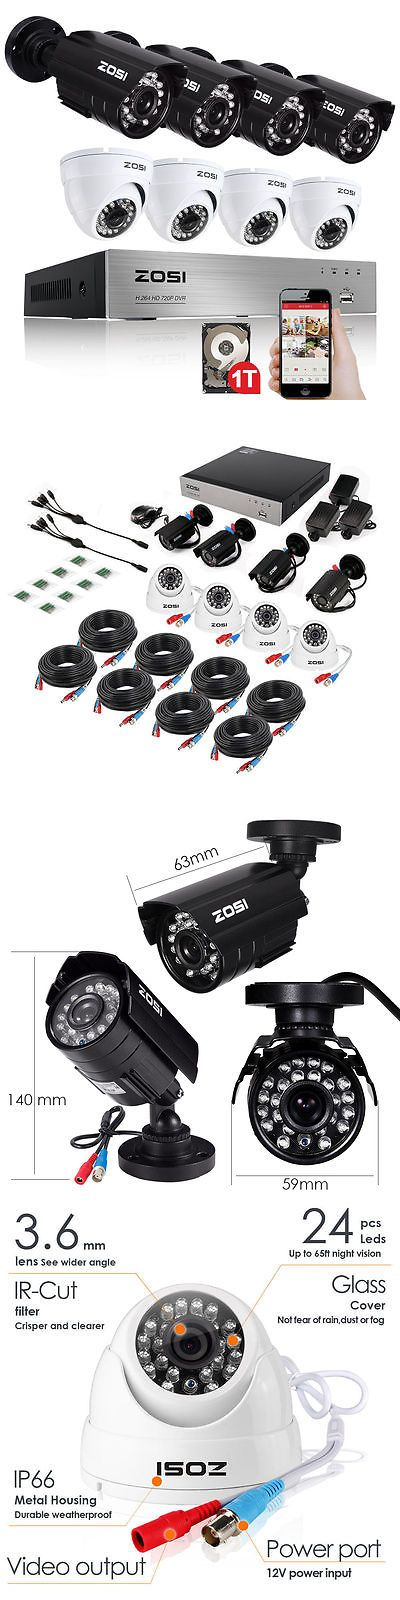 Surveillance Security Systems: Zosi 720P 8Ch Hdmi Dvr 1500Tvl Outdoor Night Vision Security Camera System 1Tb BUY IT NOW ONLY: $209.99